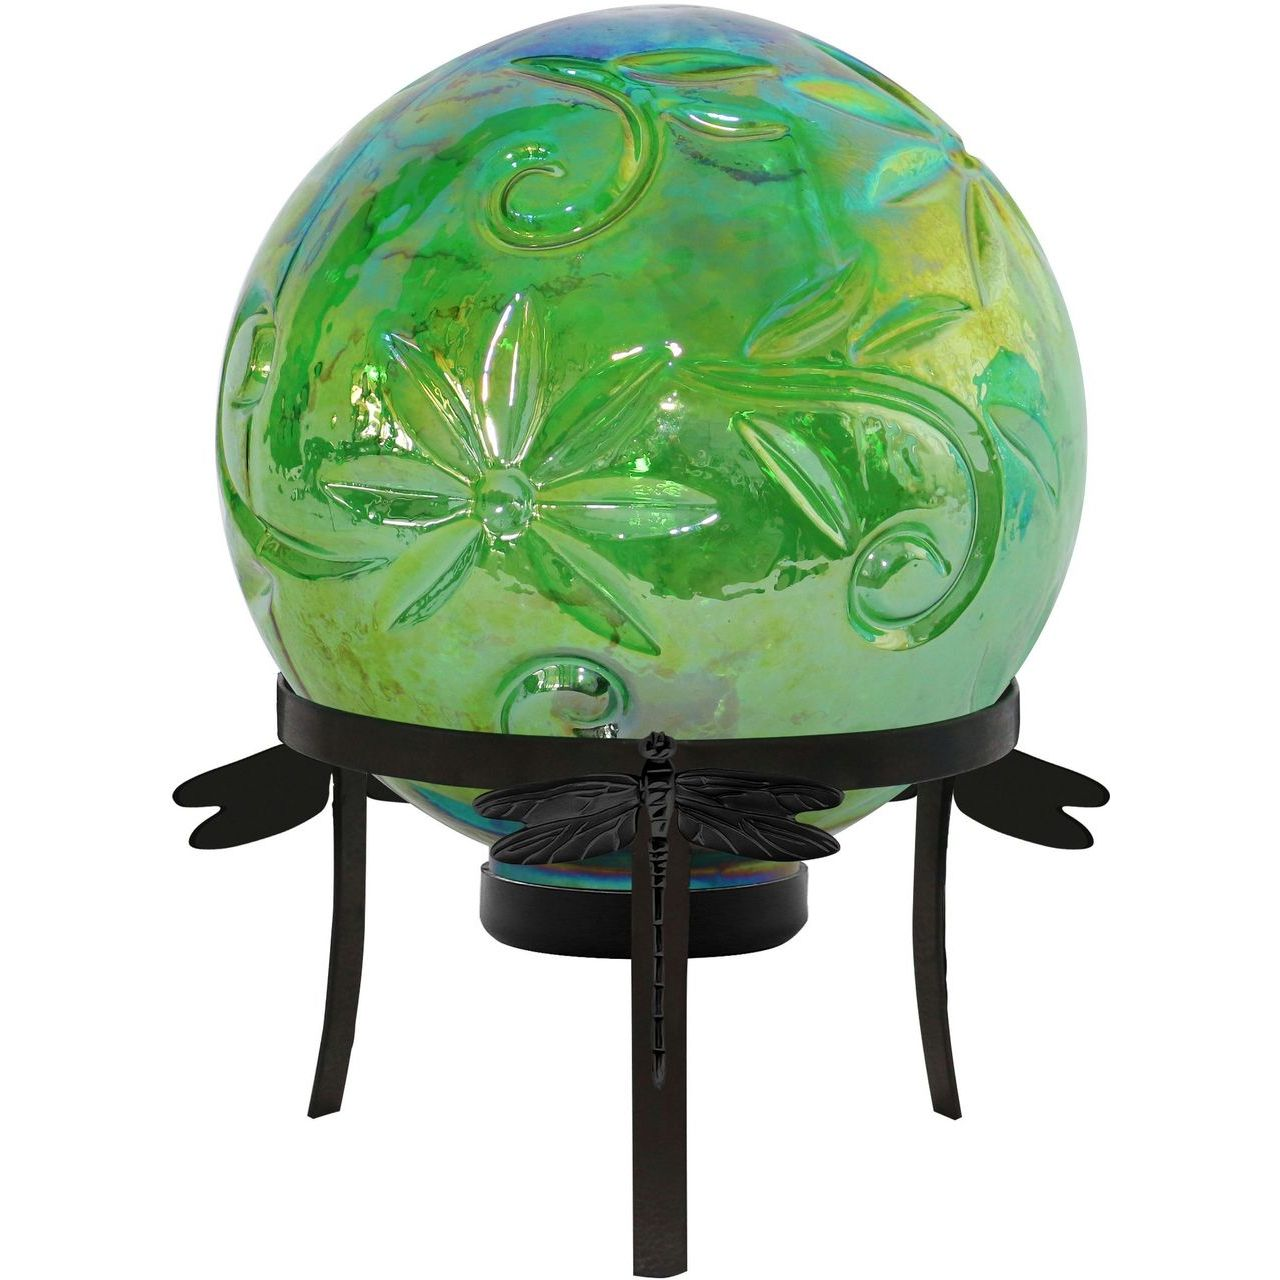 Alpine HGY112A-GN Pearlized Green Glass LED Gazing Globe & Stand